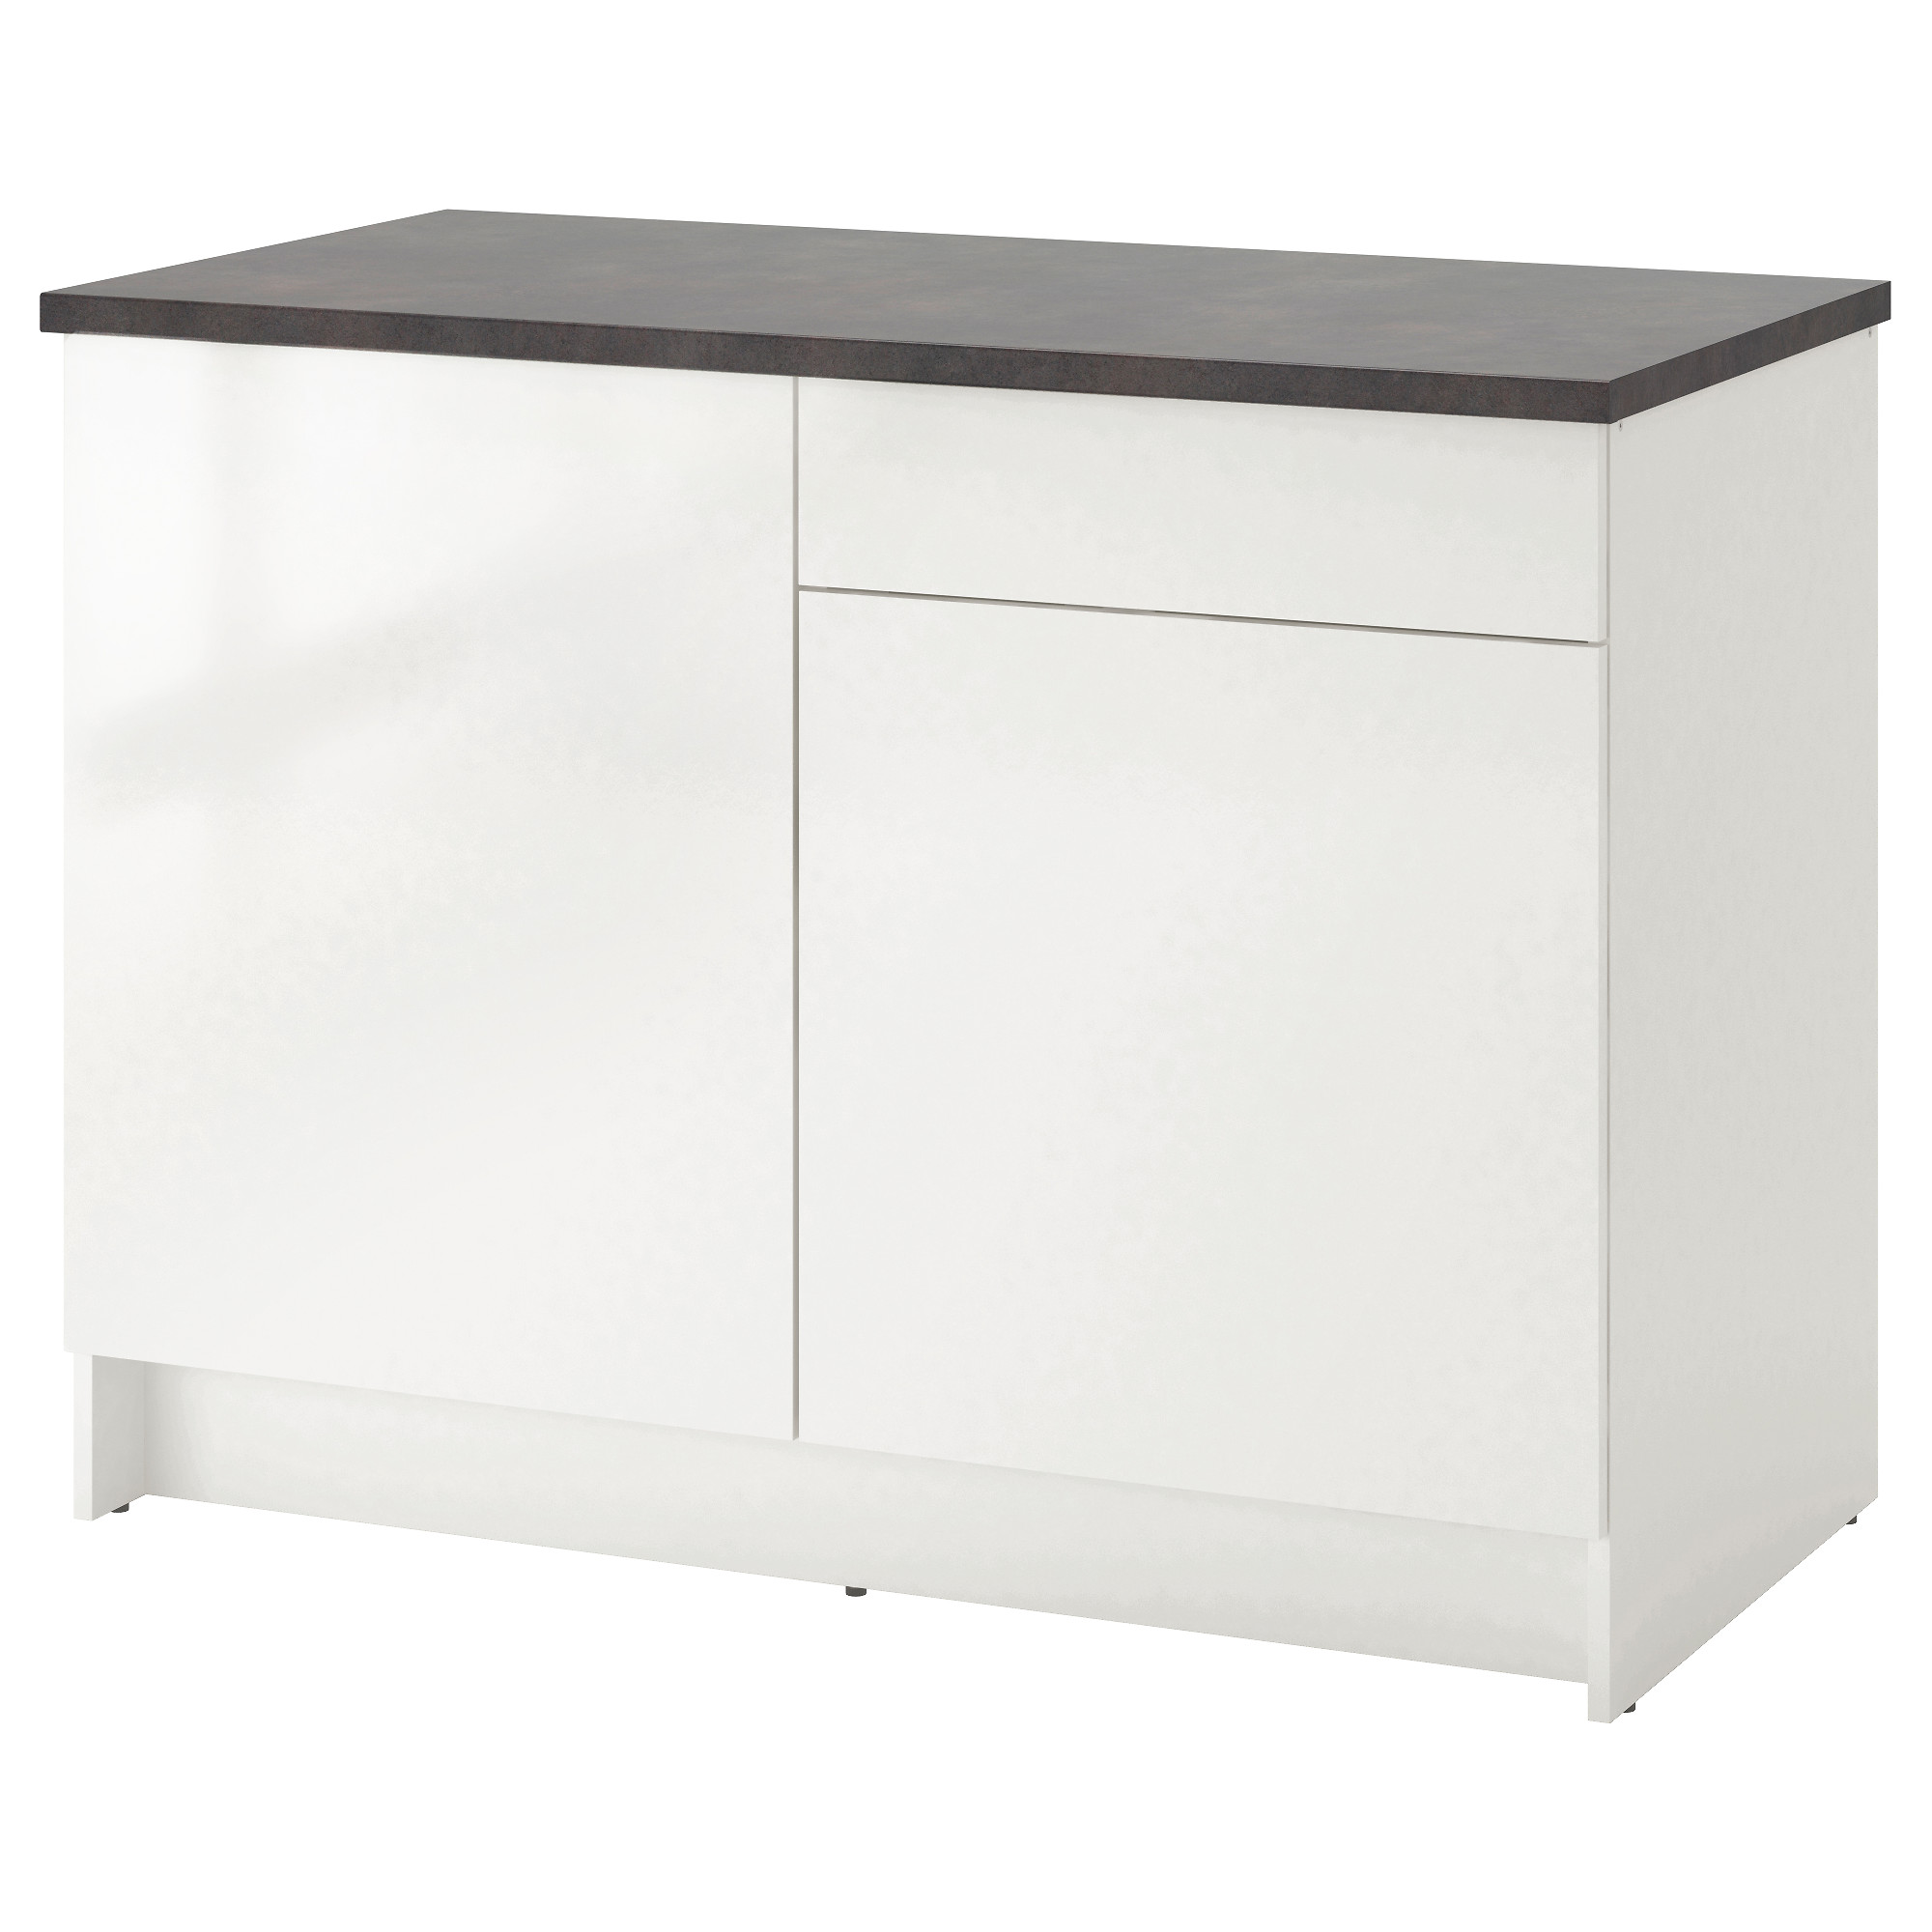 KNOXHULT Base cabinet with doors and drawer - IKEA